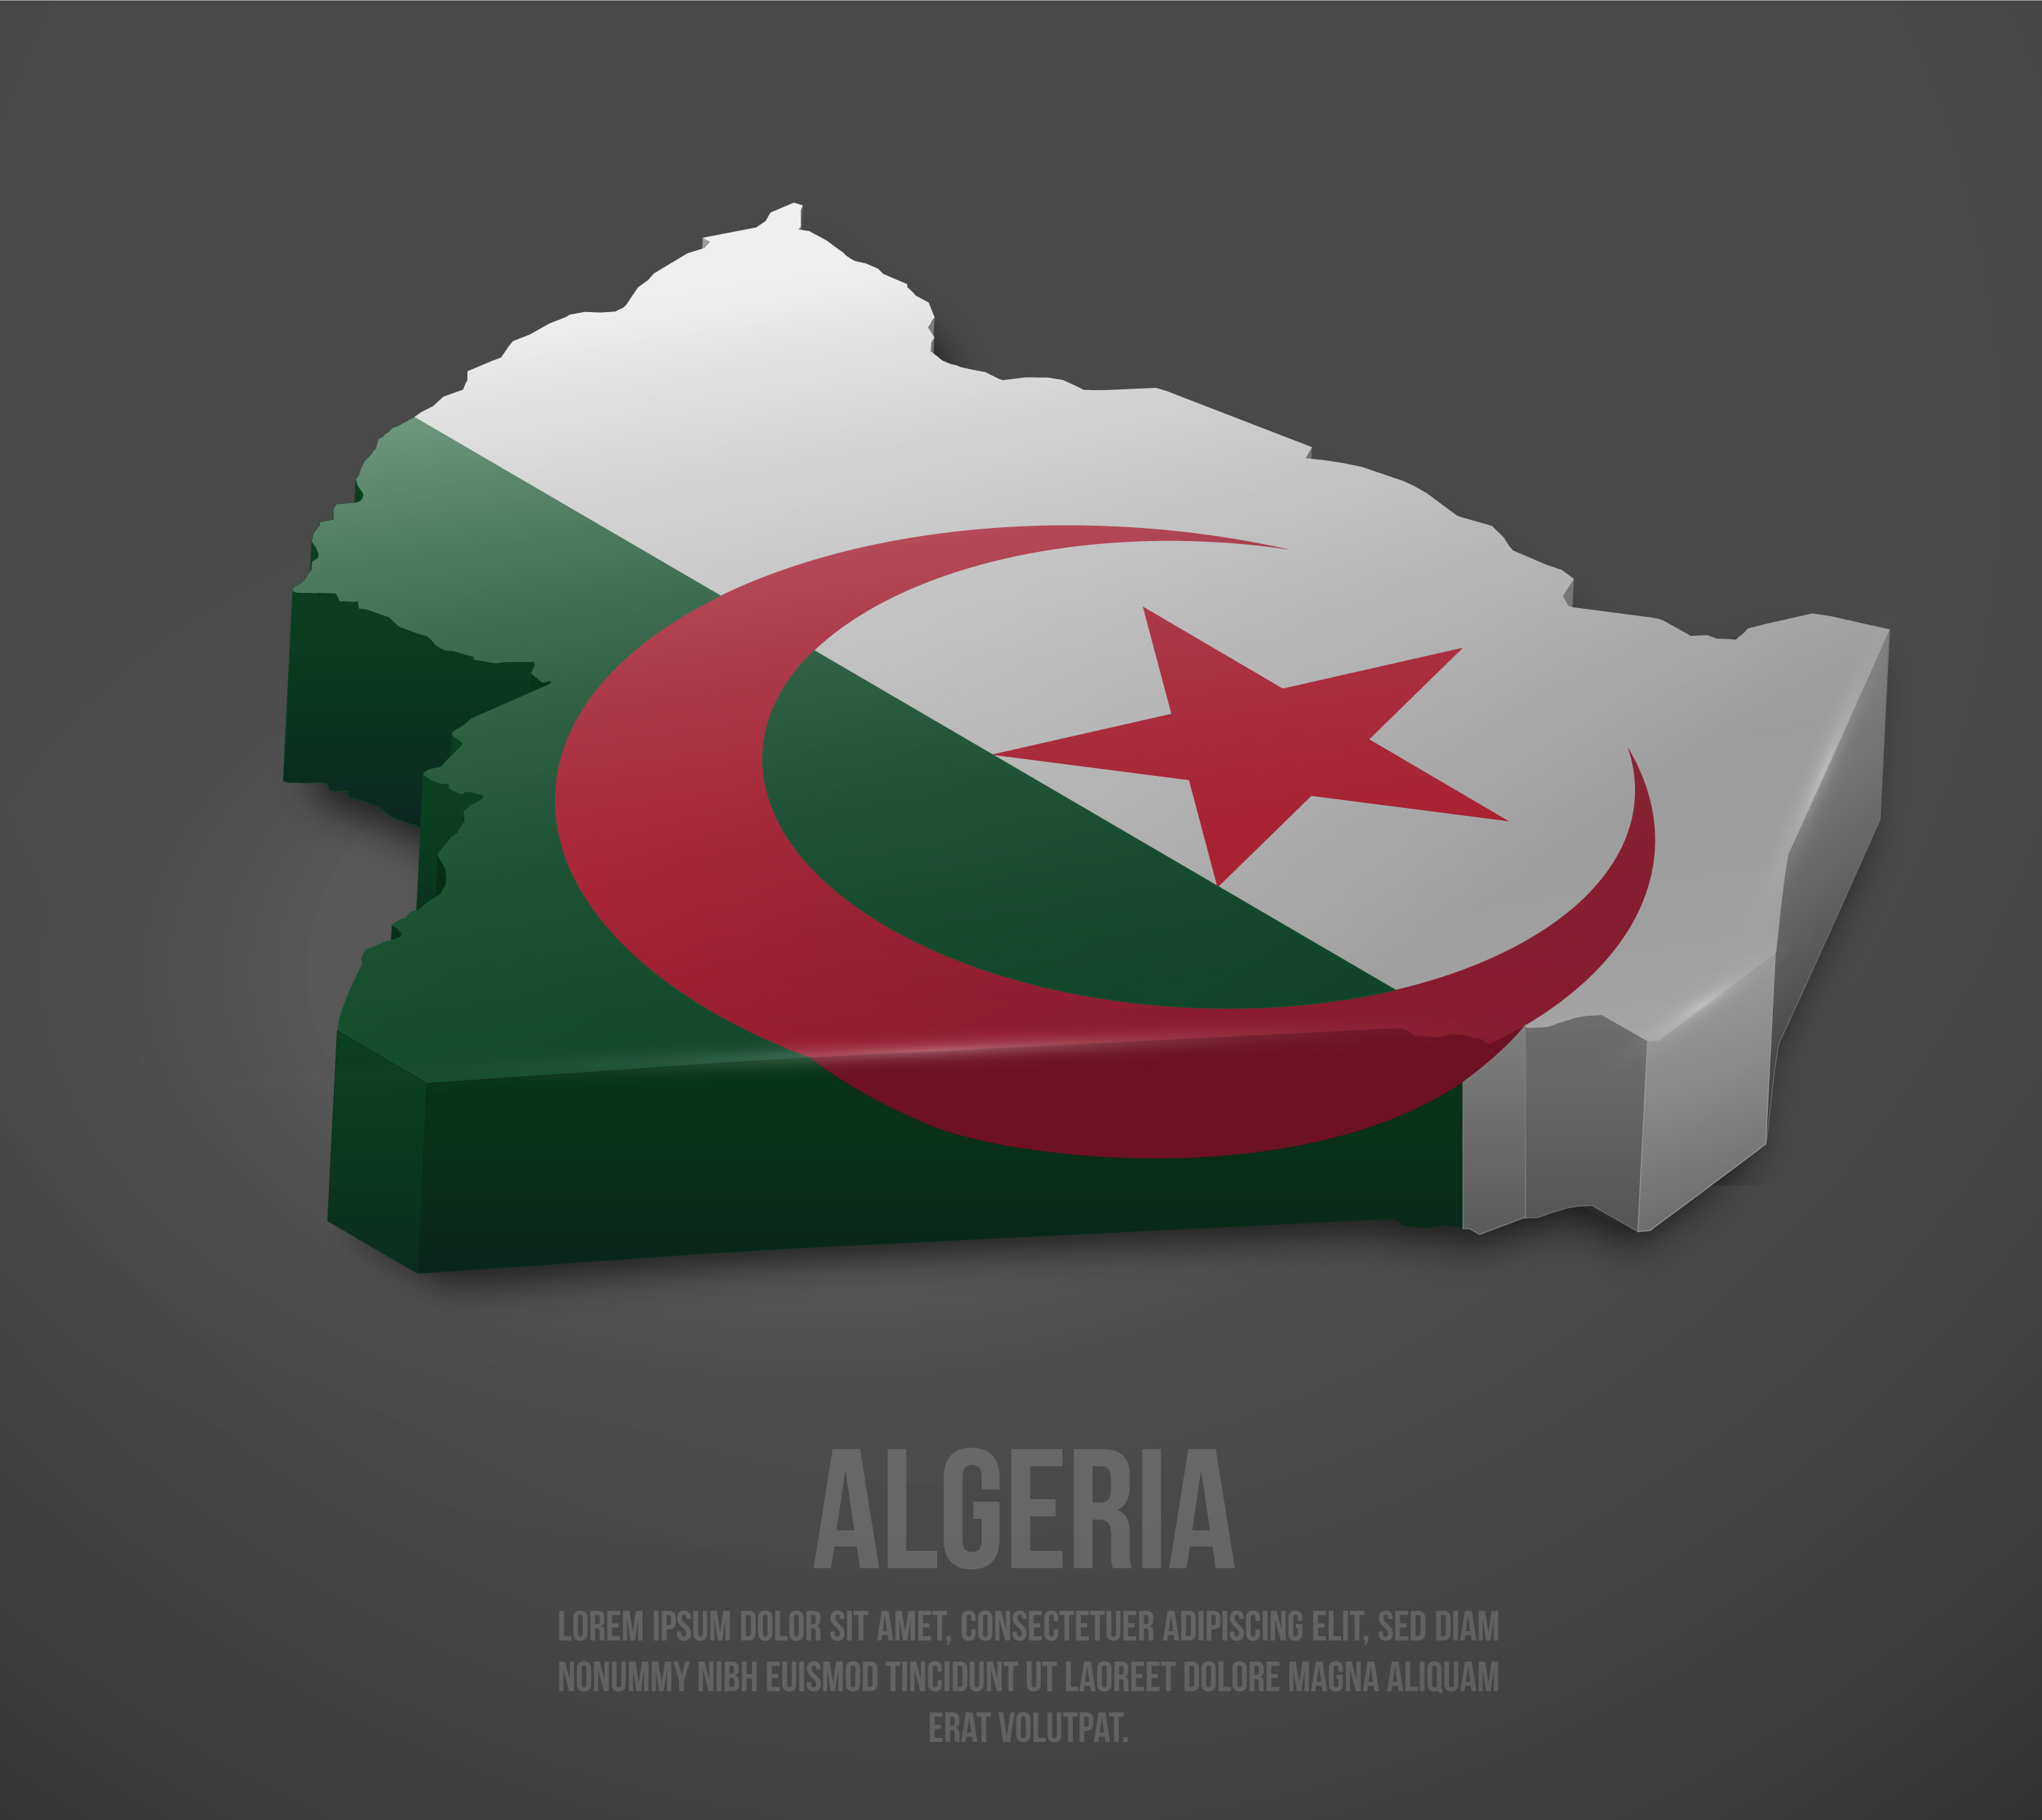 background information of algeria Background information the territory now known as algeria was only partially under the ottoman empire 's control in 1830 the dey ruled the entire regency of algiers , but only exercised direct control in and around algiers , with beyliks established in a few outlying areas, including oran and constantine.